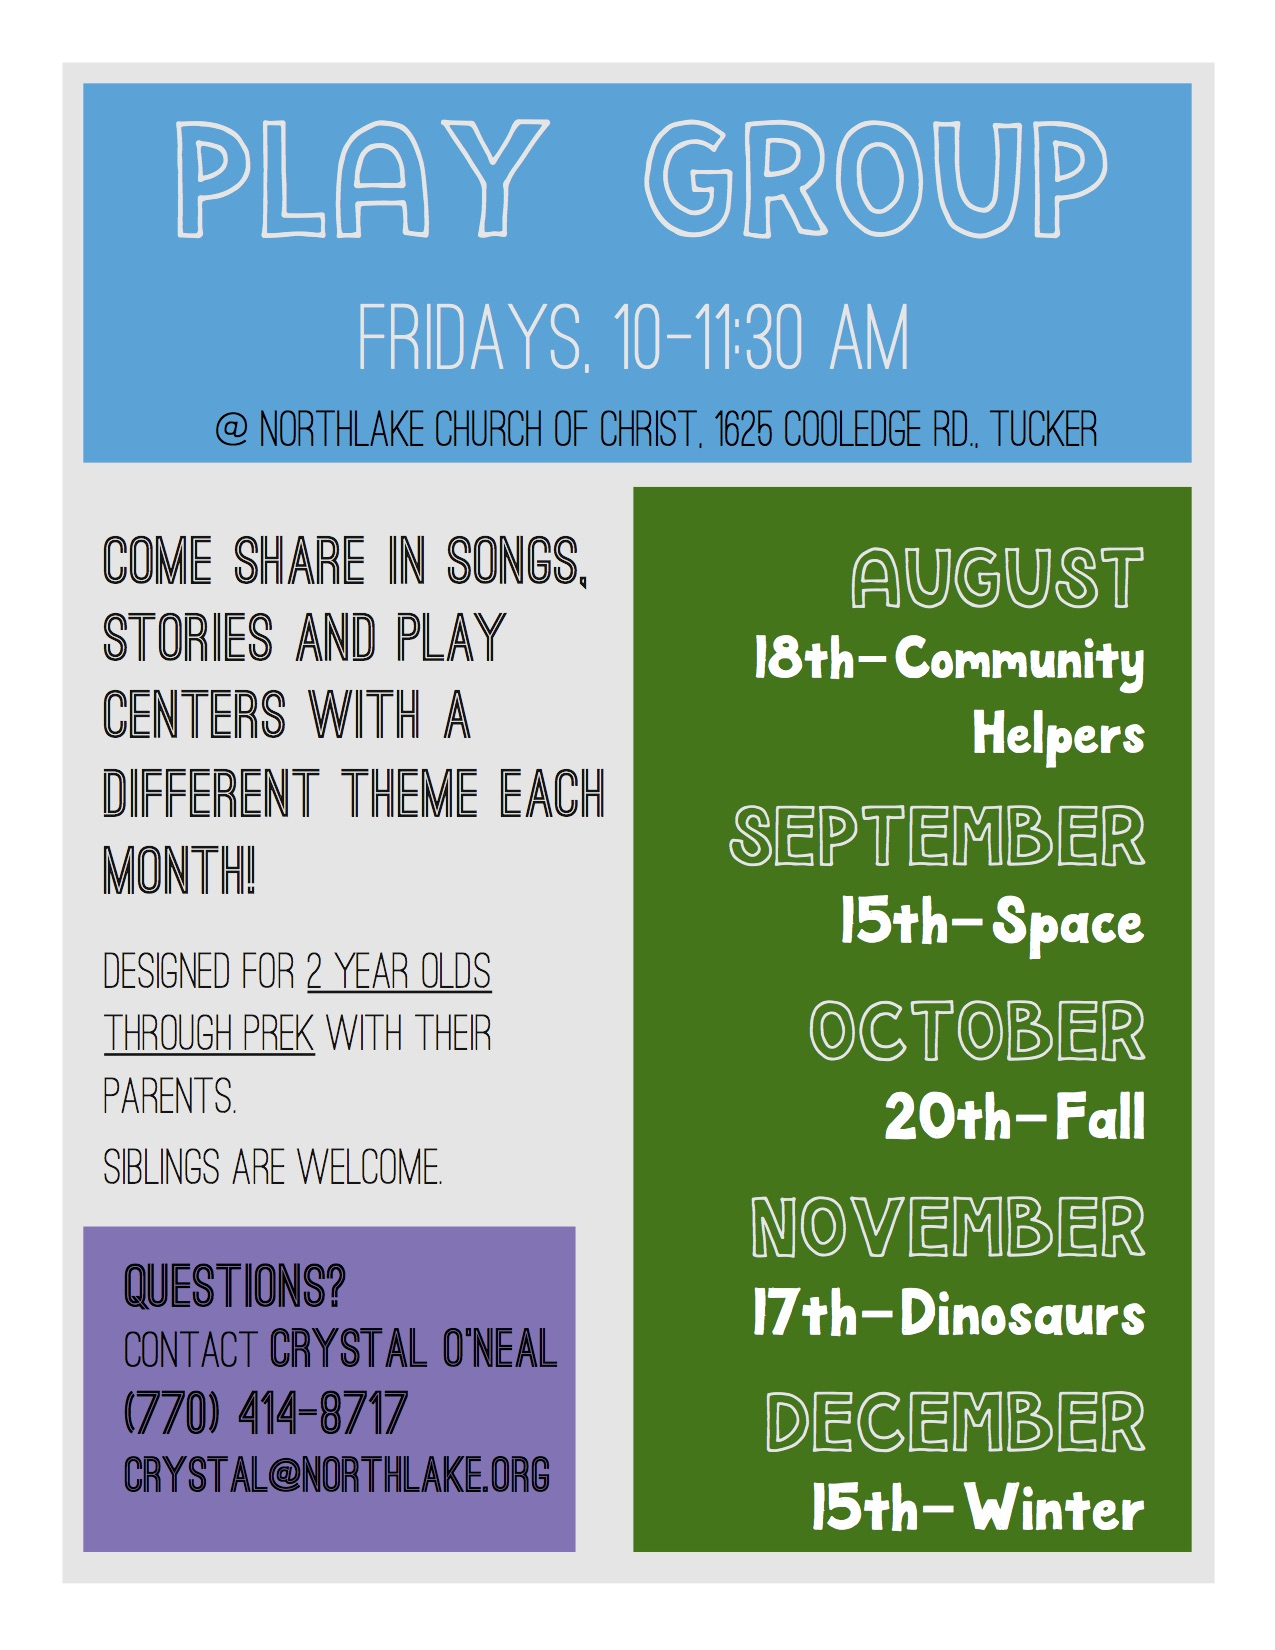 Play Day Flyer 2017 Aug.-Dec.